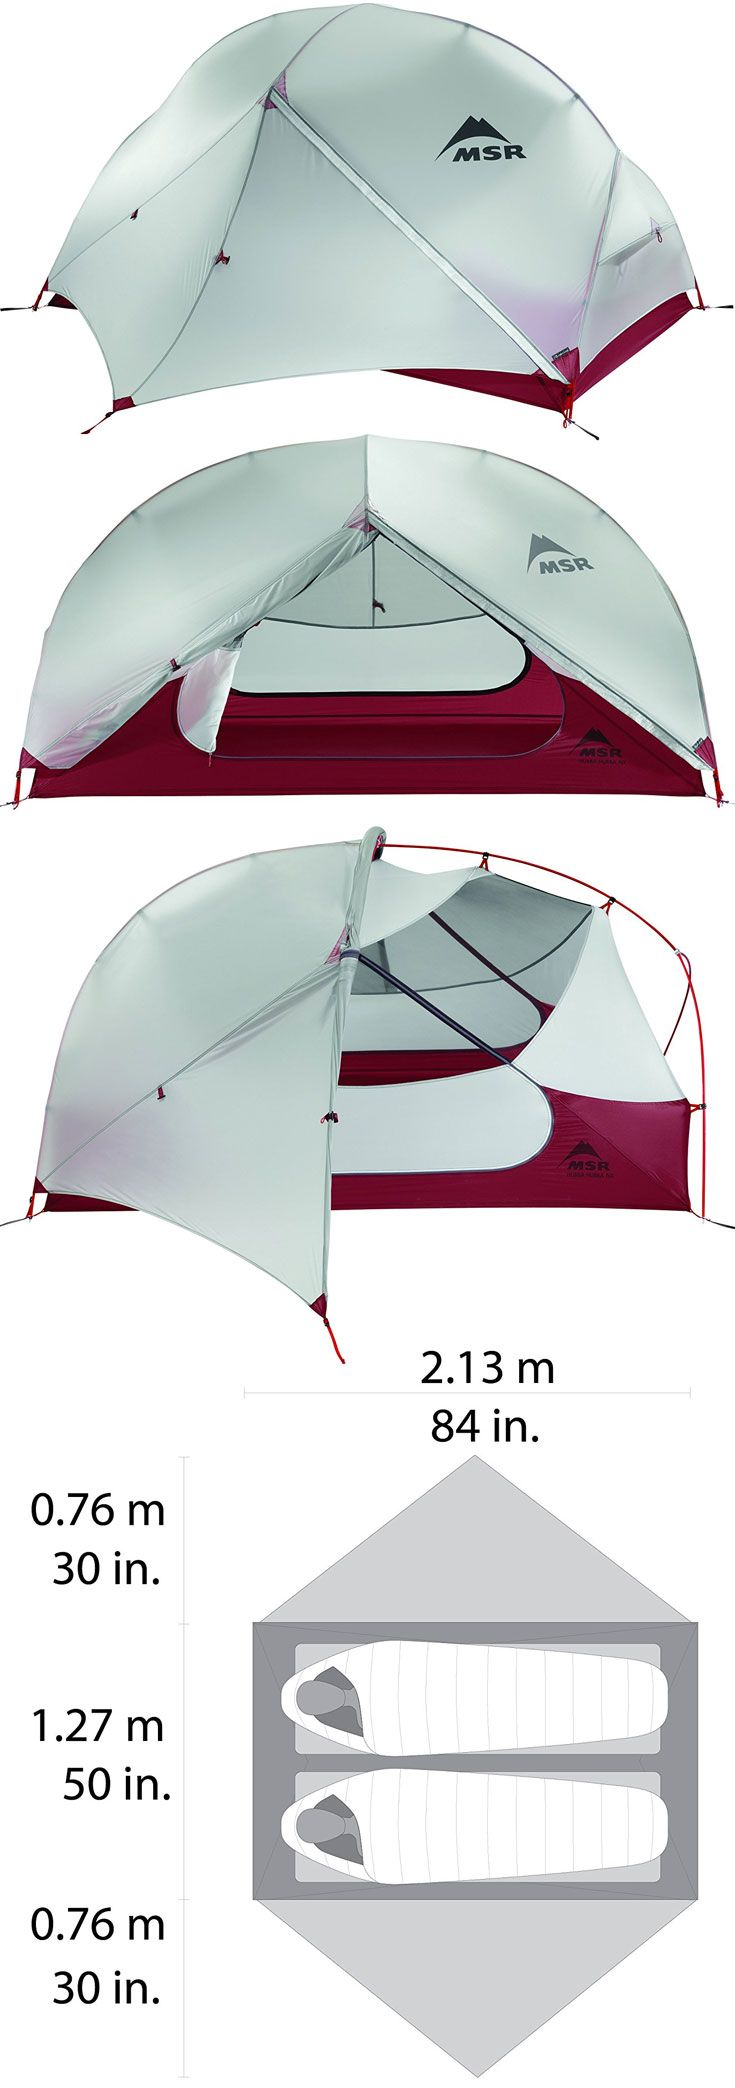 Designed for backpackers who need a tent that can do it all while still being compact and lightweight, our bestselling MSR Hubba Hubba 2-person tent feels as light and efficient to use as it does to carry. From its optimized, symmetrical geometry and non- http://campingtentslovers.com/best-backpacking-camping-tents/